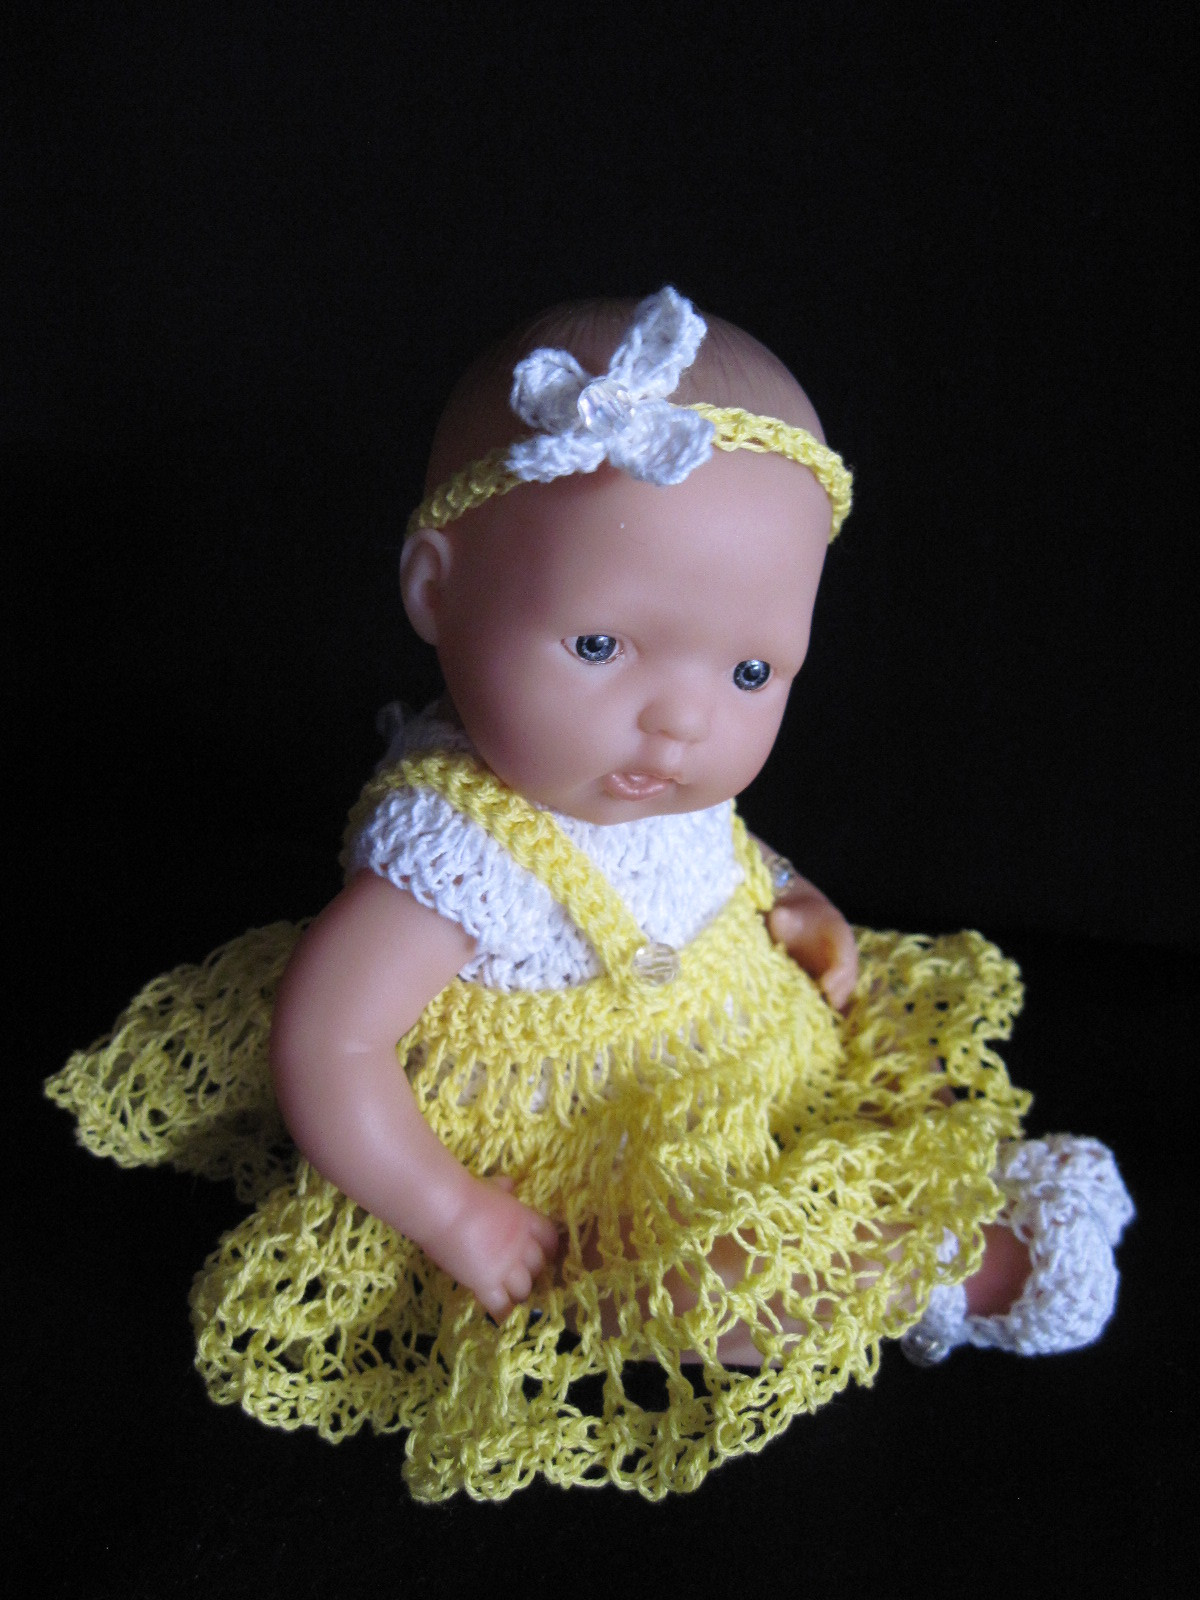 Crochet Doll Clothes Luxury Dolls and Crochet New Outfits for 7 5 Inch Berenguer Babies Of Fresh 48 Images Crochet Doll Clothes